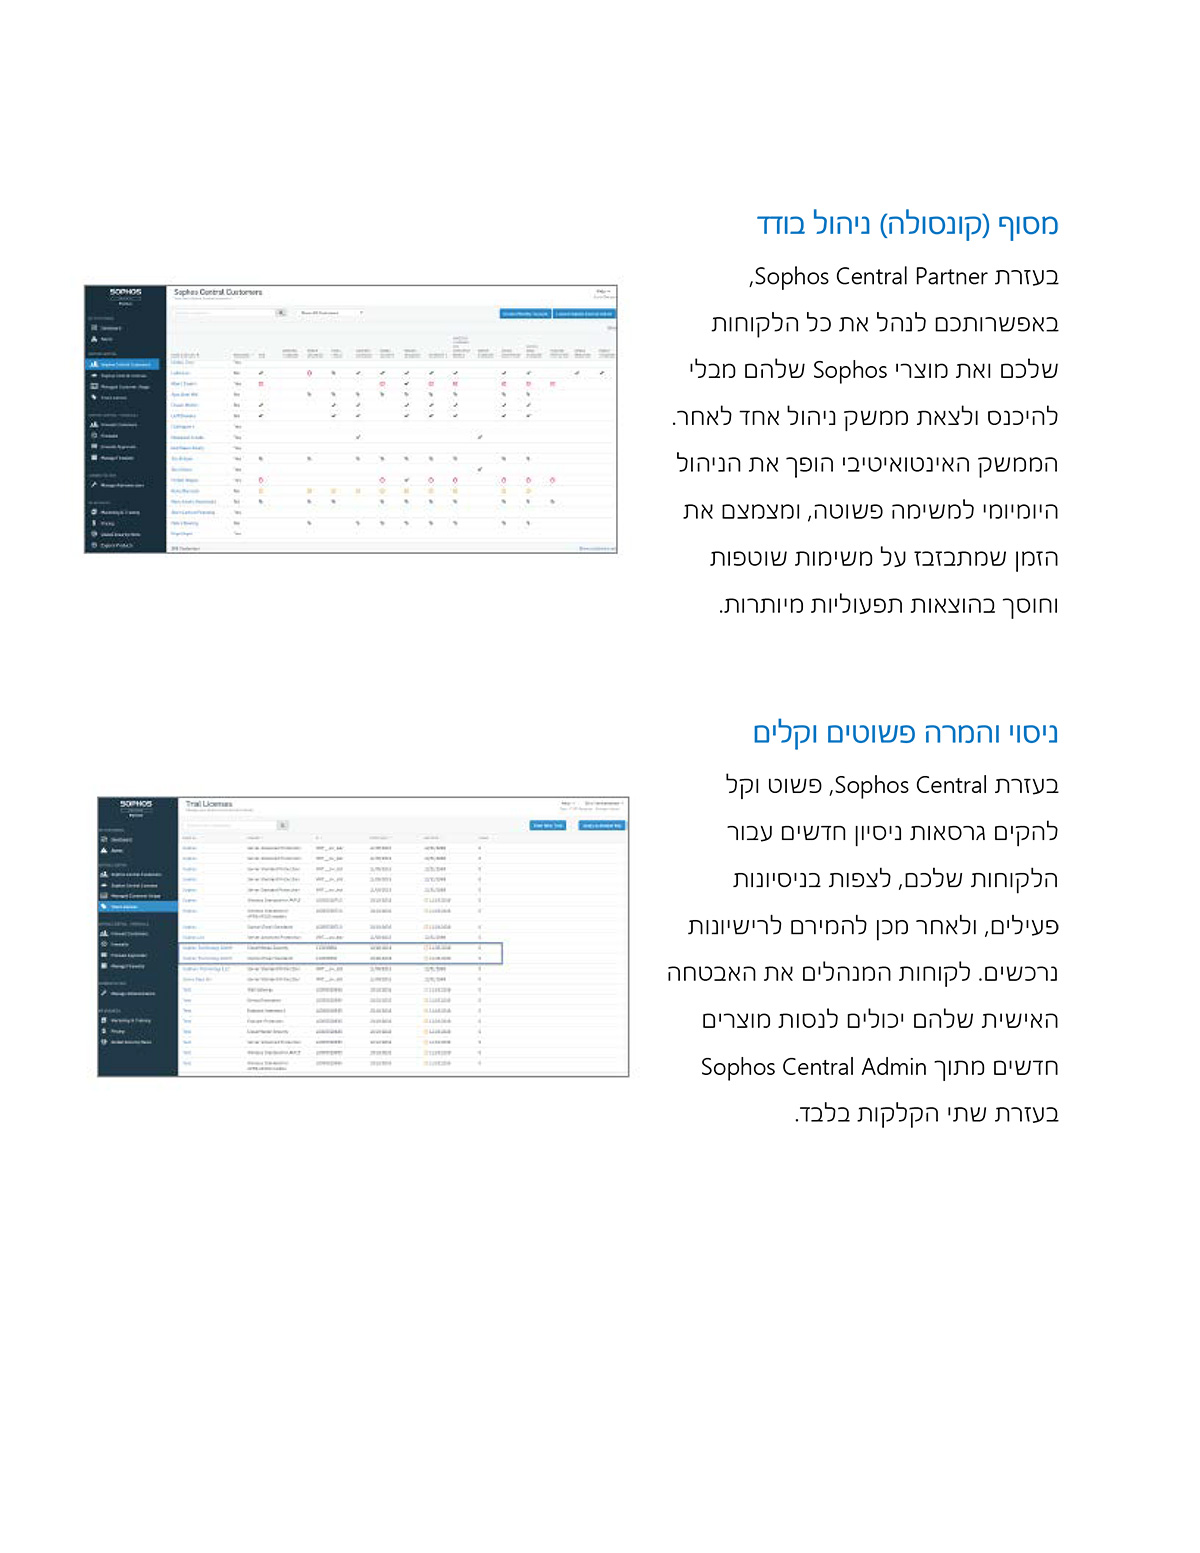 sophos central Page 2